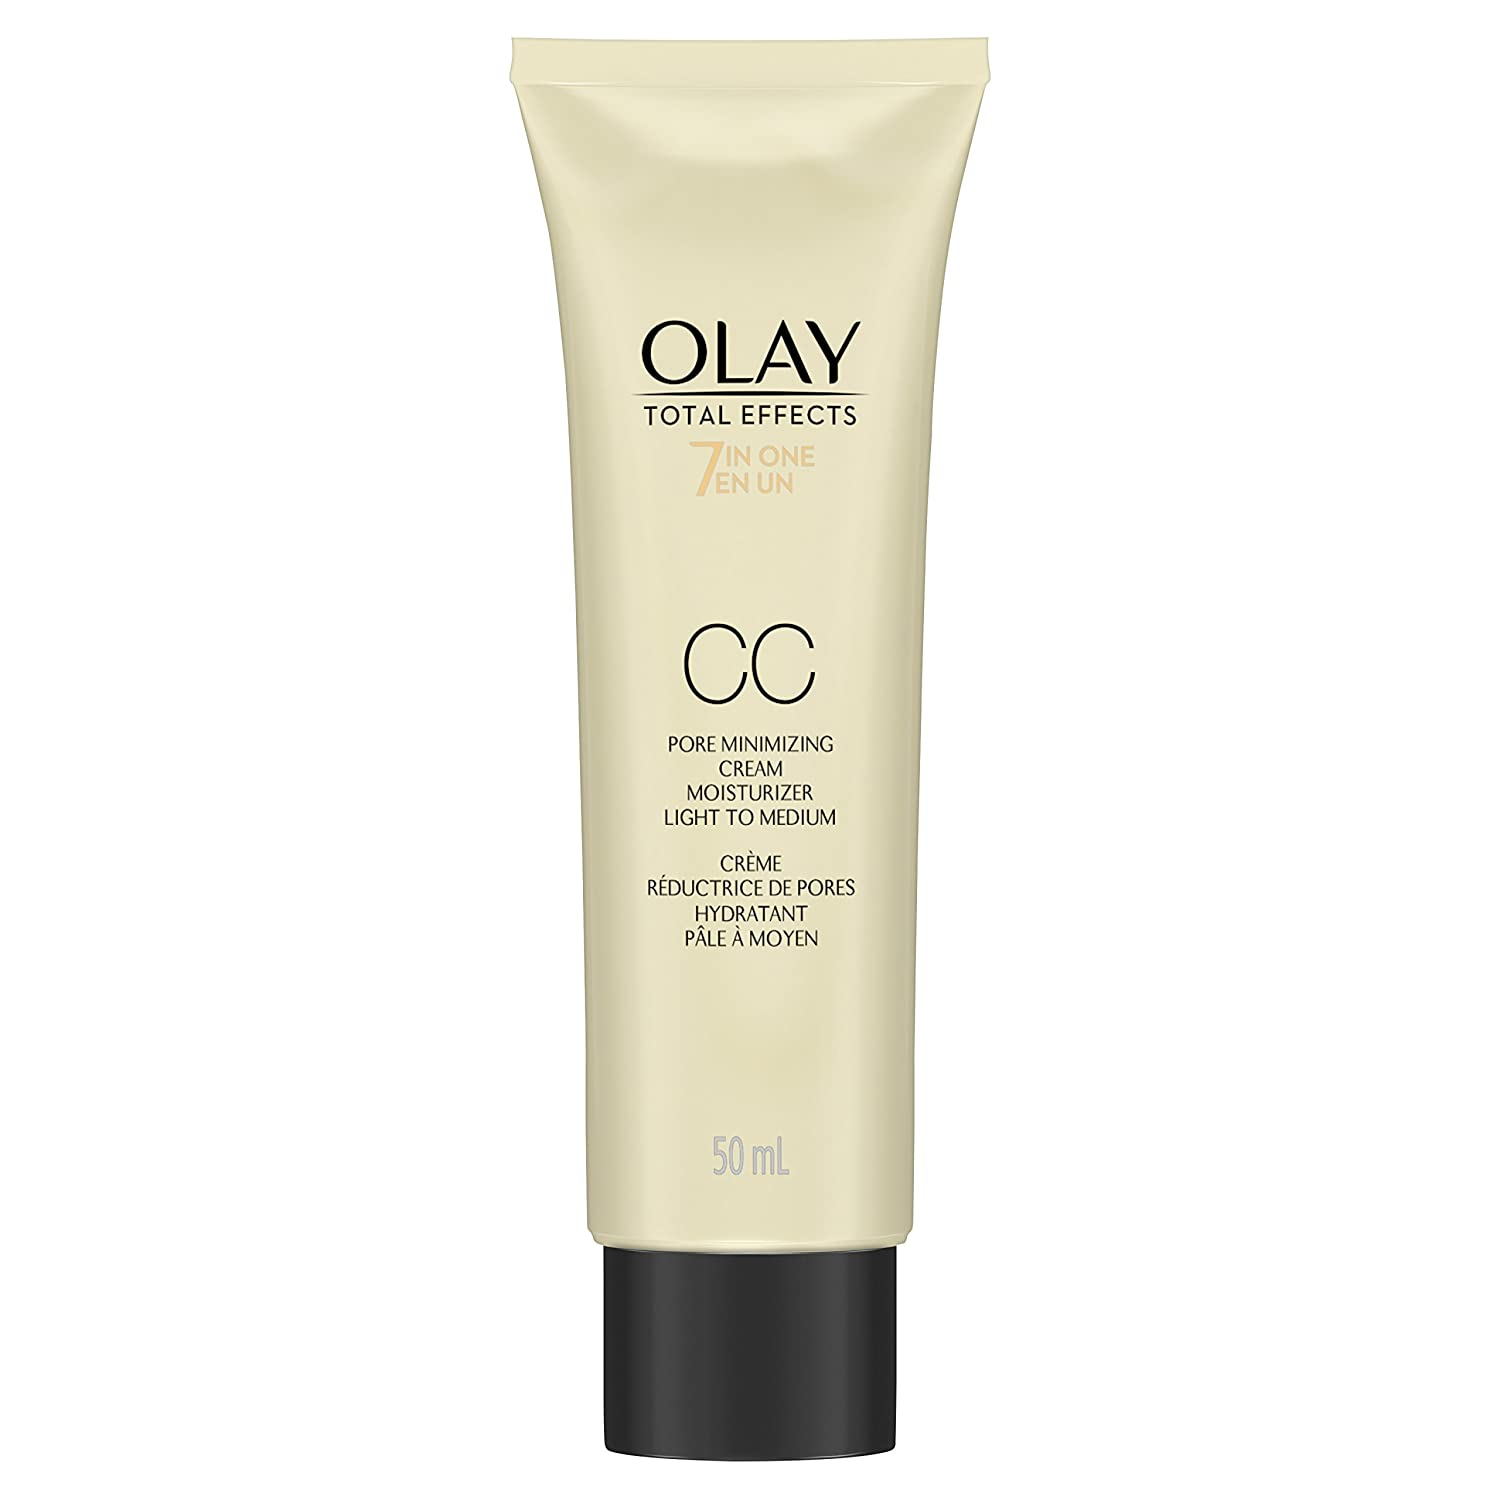 Olay Total Effects Pore Minimizing Cc Cream, Suncreen, 50ml Procter and Gamble NA